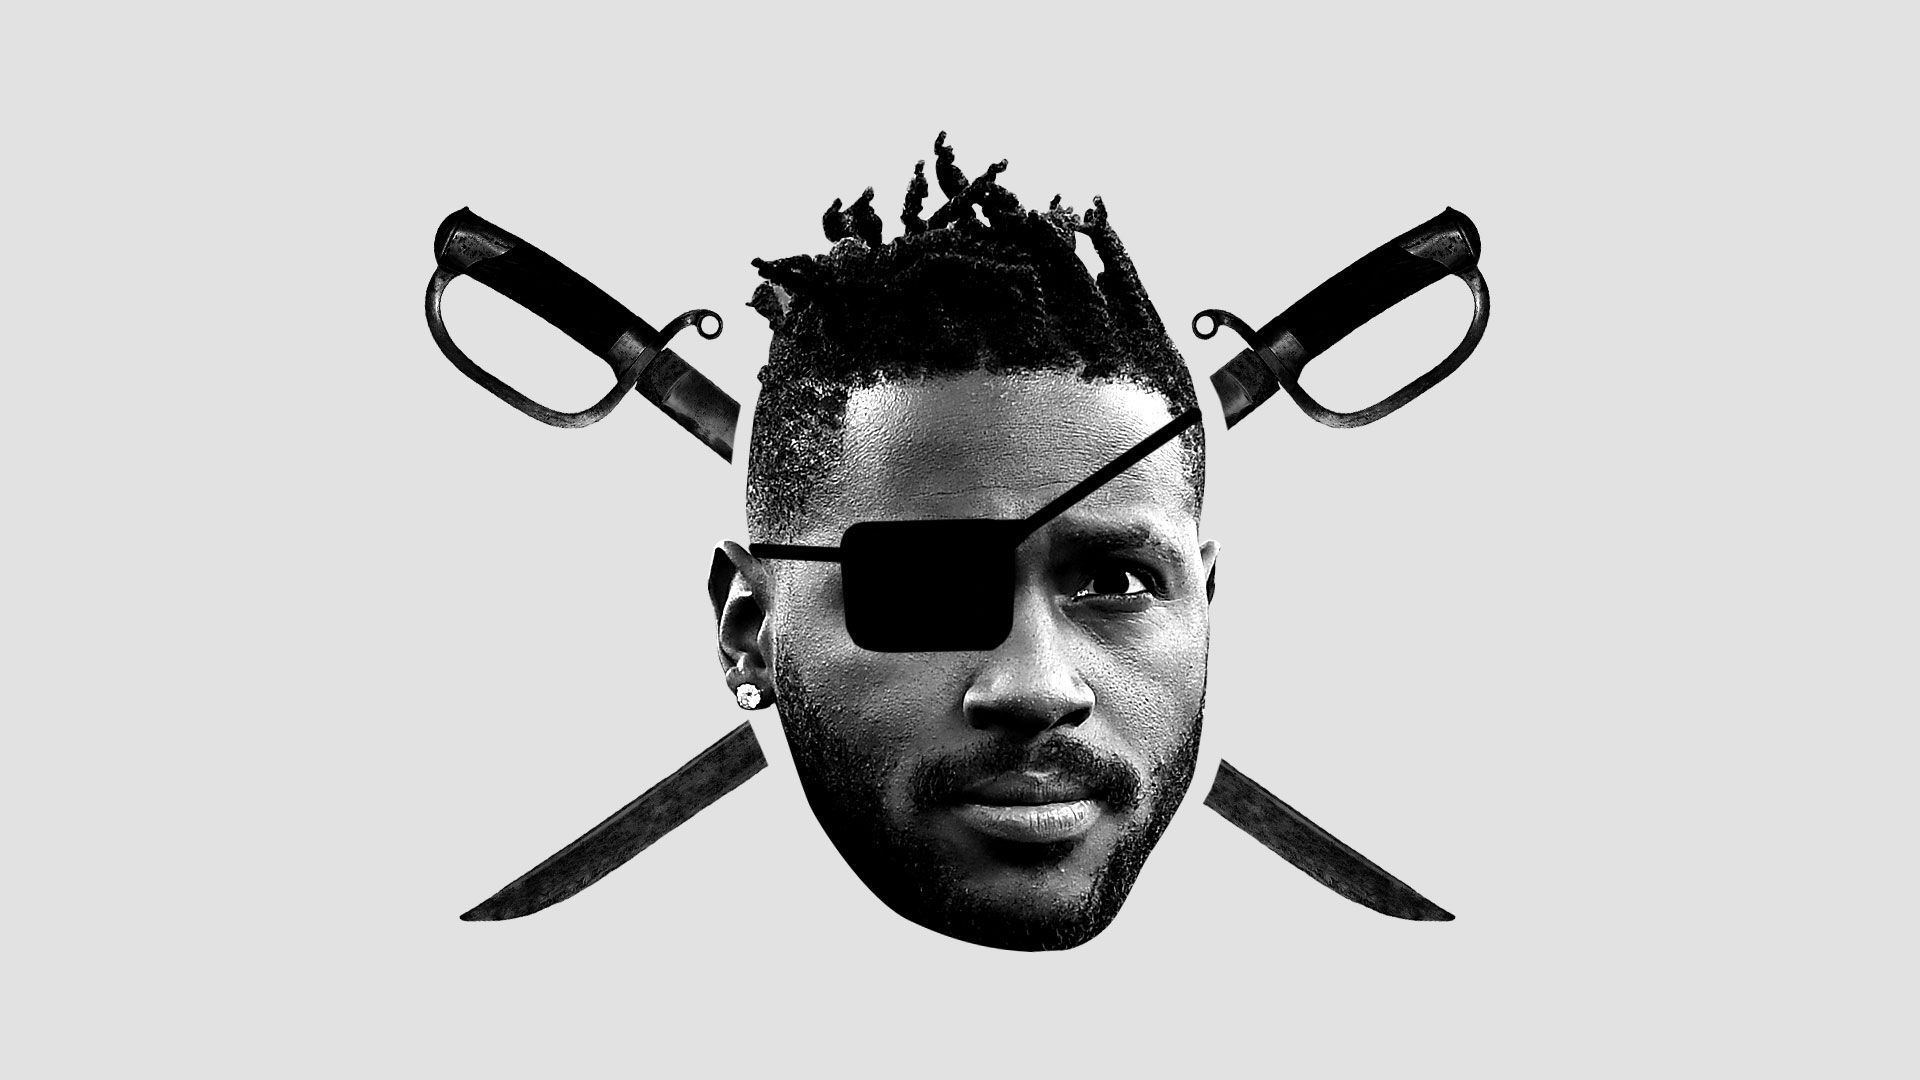 Antonio Brown as the man in the Raider's logo